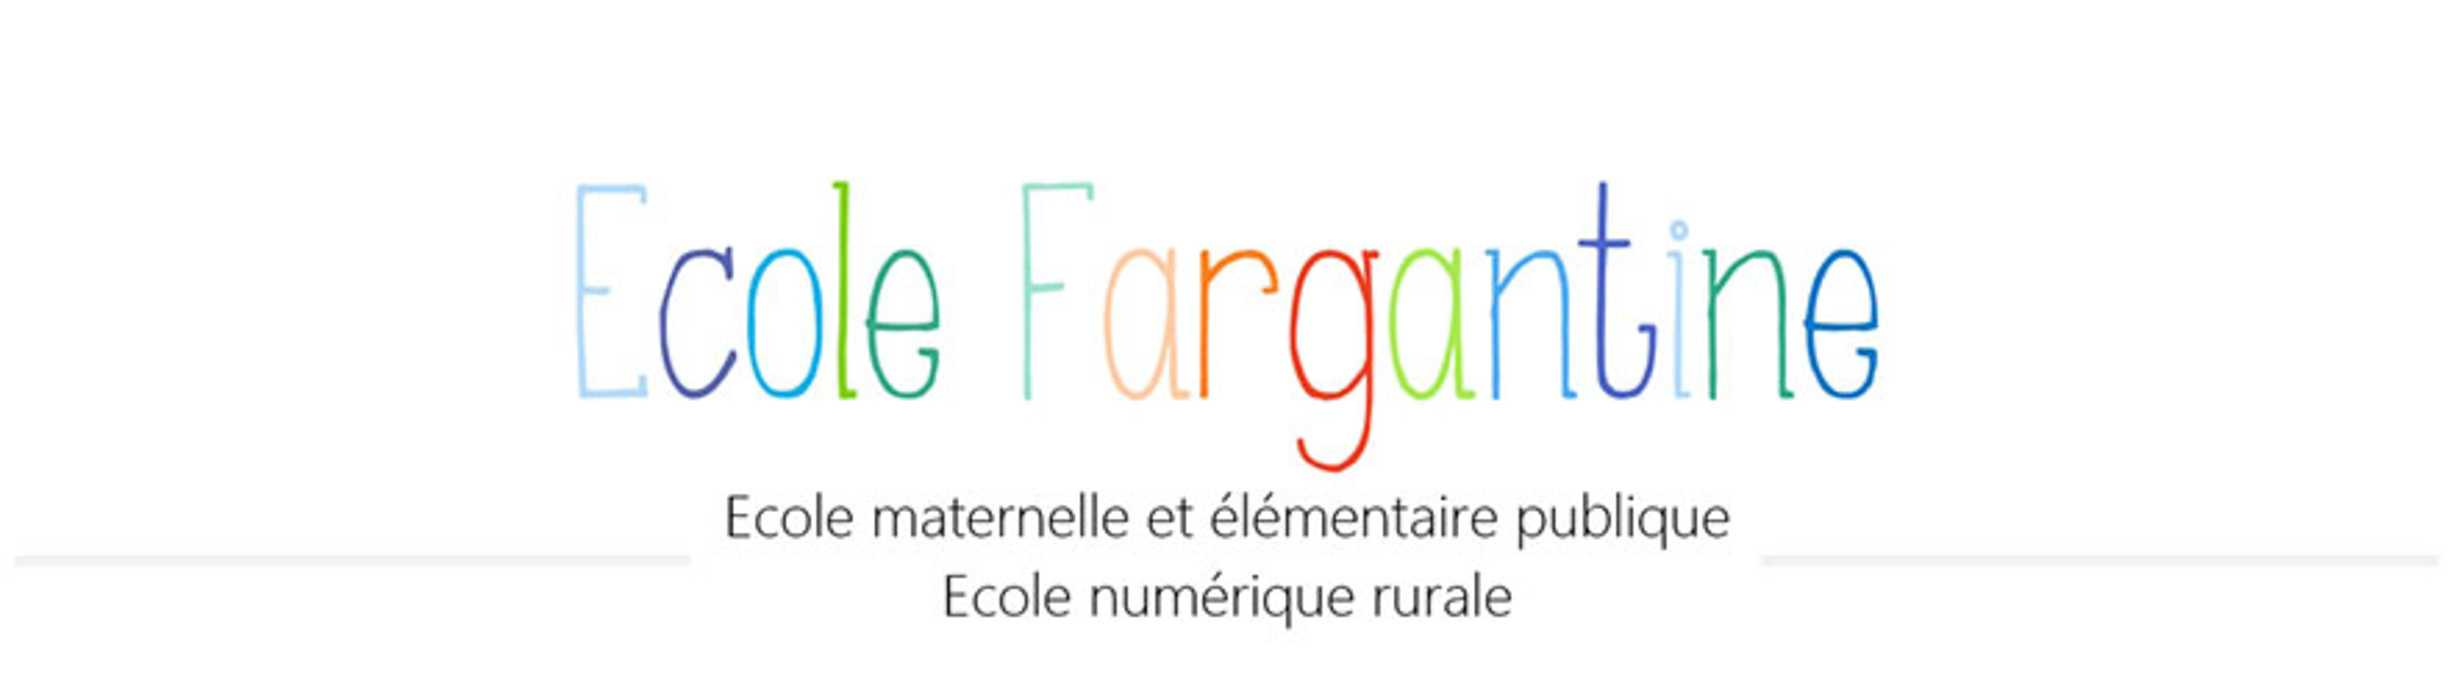 Association des Parents d'Elèves École Fargantine - Corlay  0